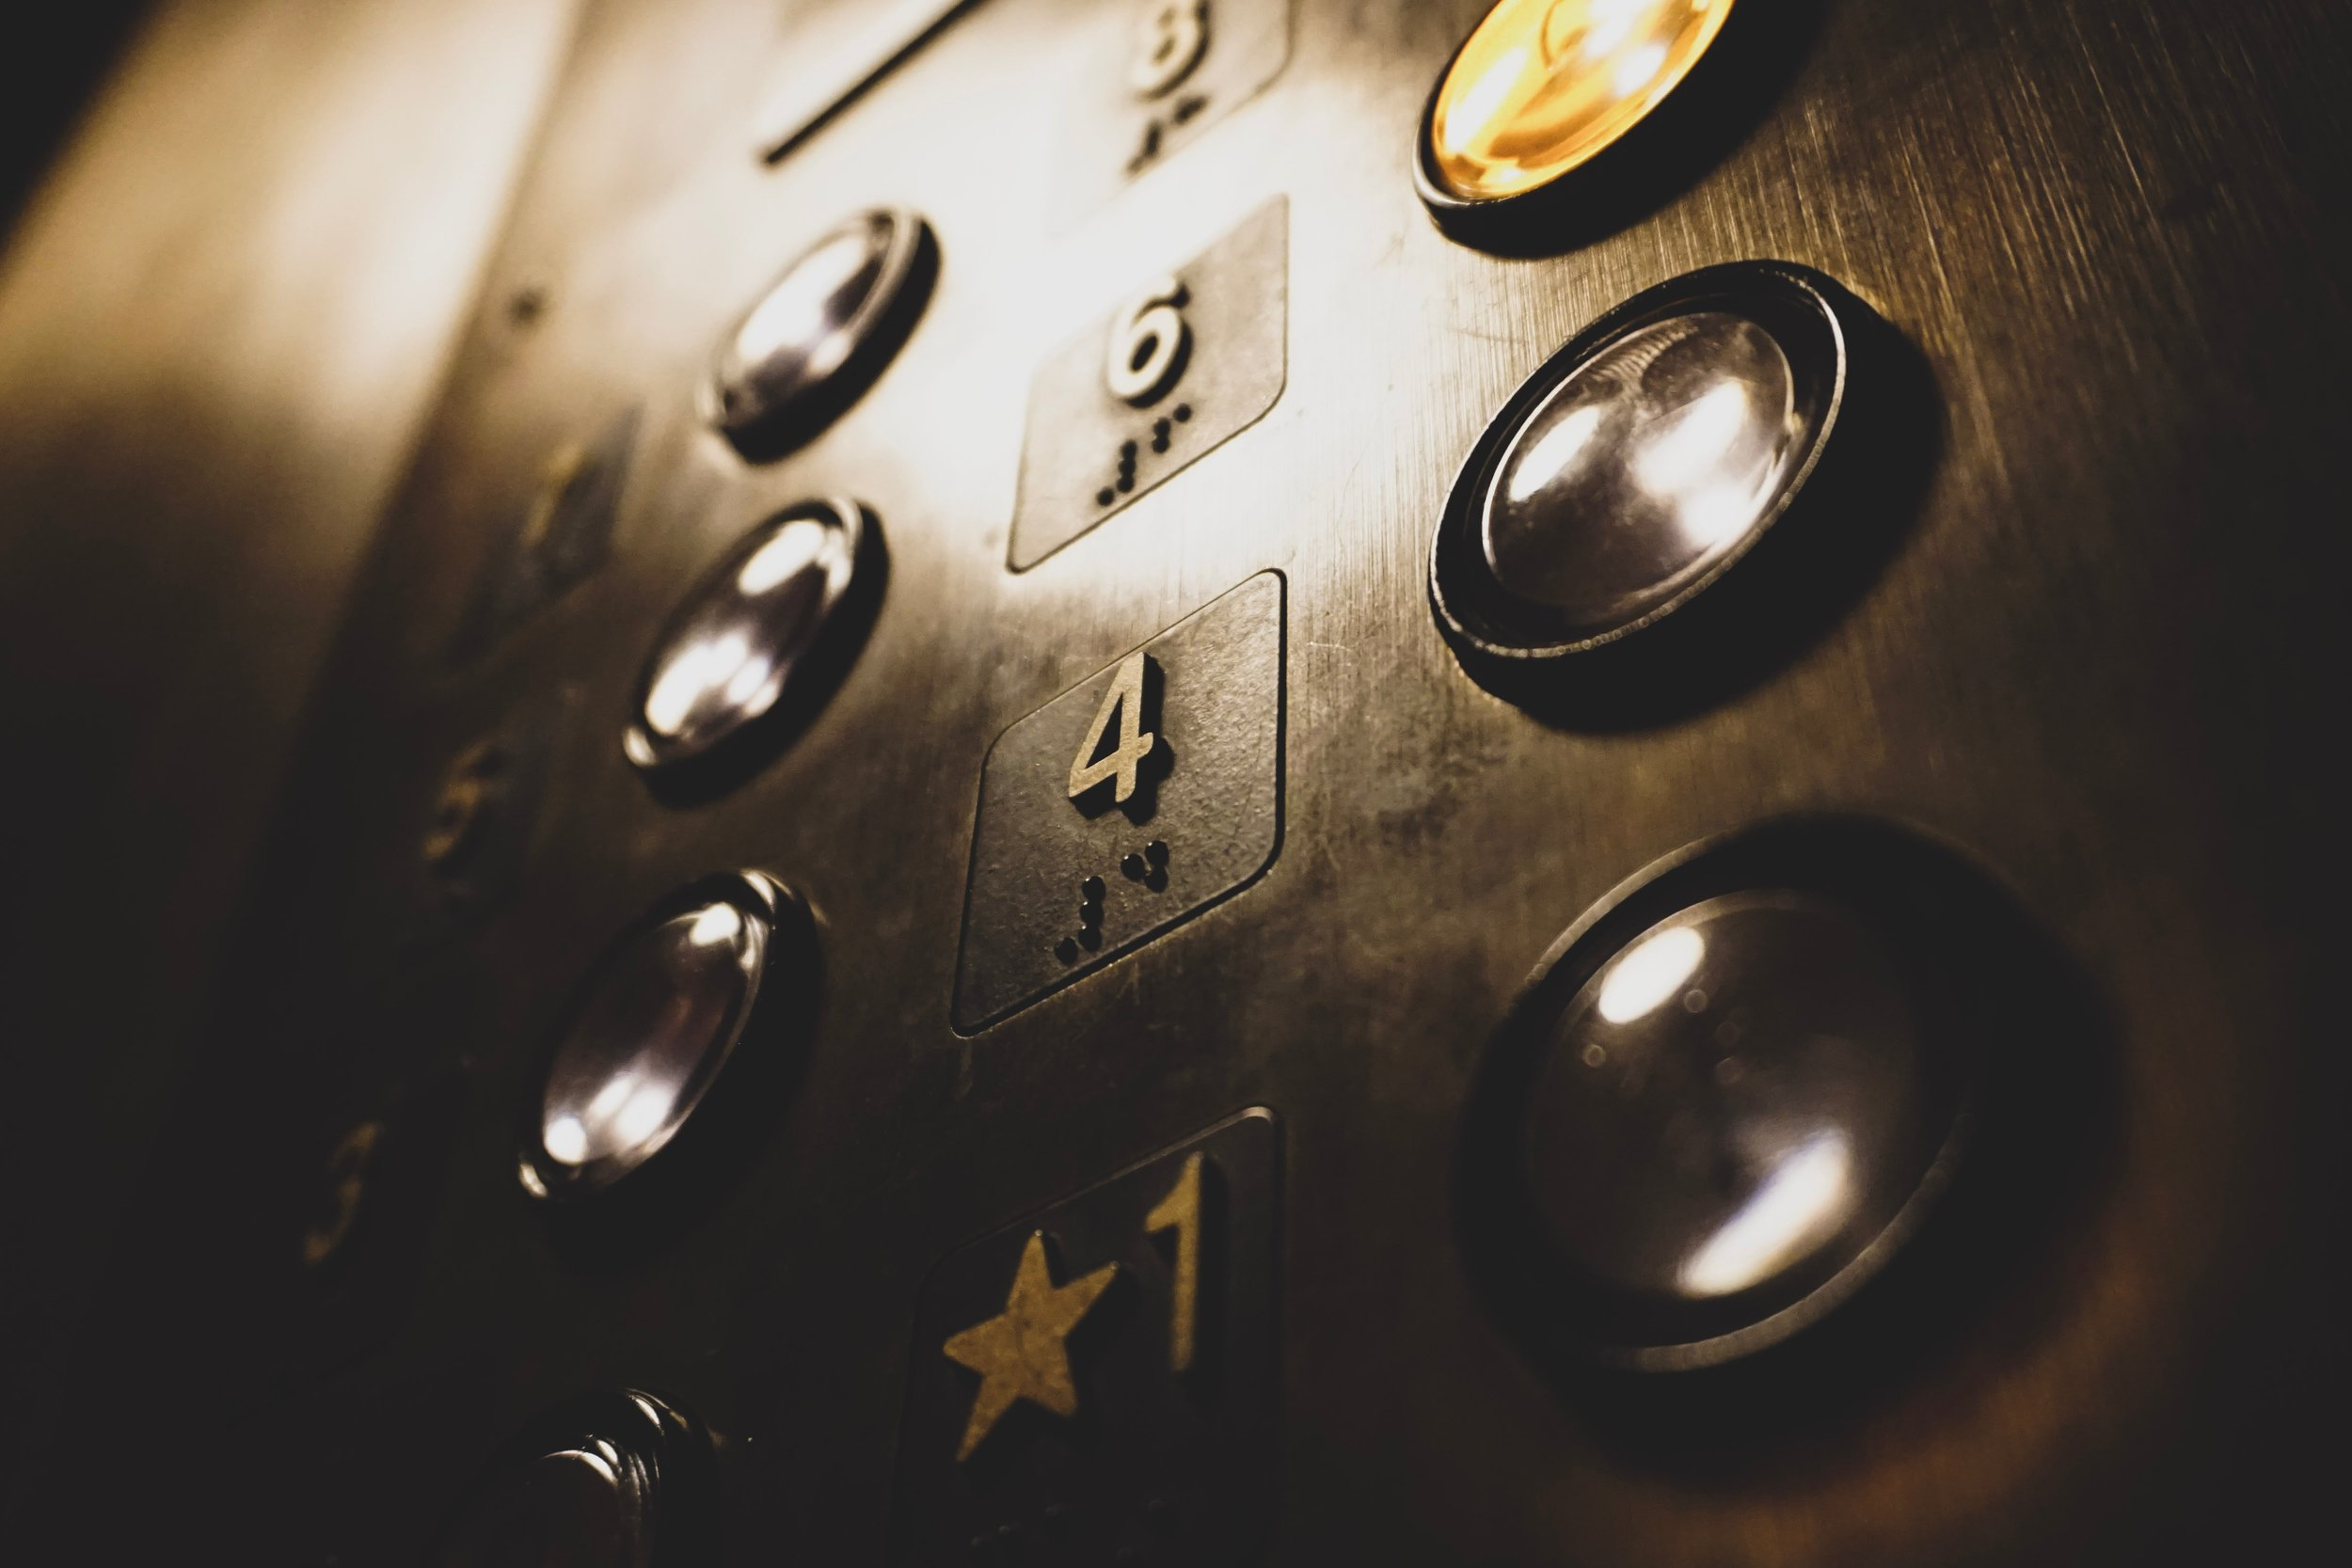 Do you have your 'elevator' pitch ready? - There will be brief windows of opportunity — at a conference, a networking event or other impromptu meeting — when you only have a few minutes to talk to an investor and pique their interest. You could simply introduce yourself as 'a systematic CTA strategy' for example, but what investors really need to know is what makes your strategy unique and different from other strategies like yours? In this instance, you have an opportunity to clarify your Competitive Edge and make a powerful distinction that opens the door for further dialogue. Your Core Messages are at the heart of all of your communications, and they should be thoughtfully defined so you never miss an opportunity to wow someone at a moment's notice.